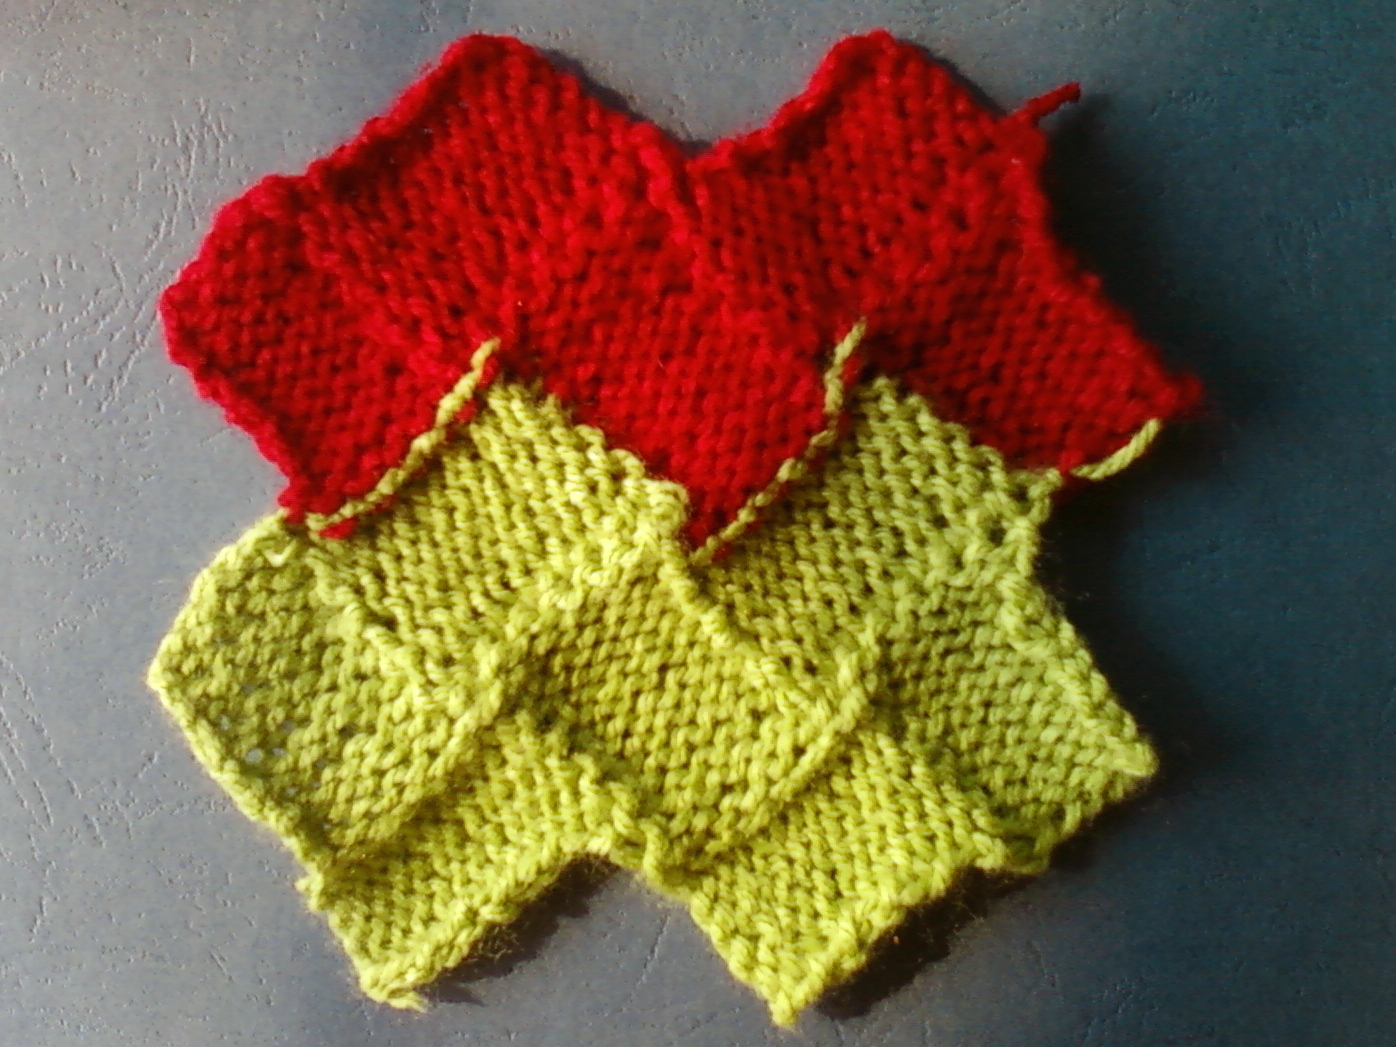 free knit entrelac patterns Zig zag stockinette stitch